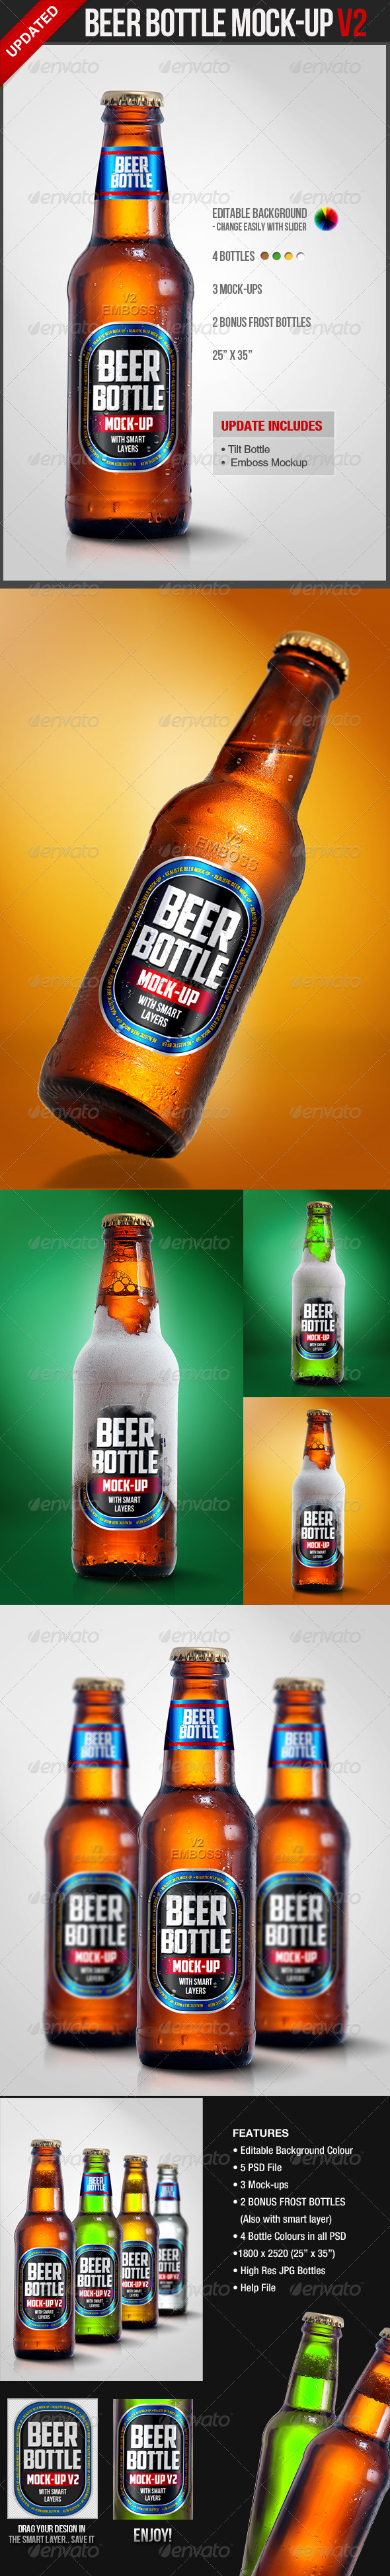 Beer Bottle Mock-Up V2 - Food and Drink Packaging